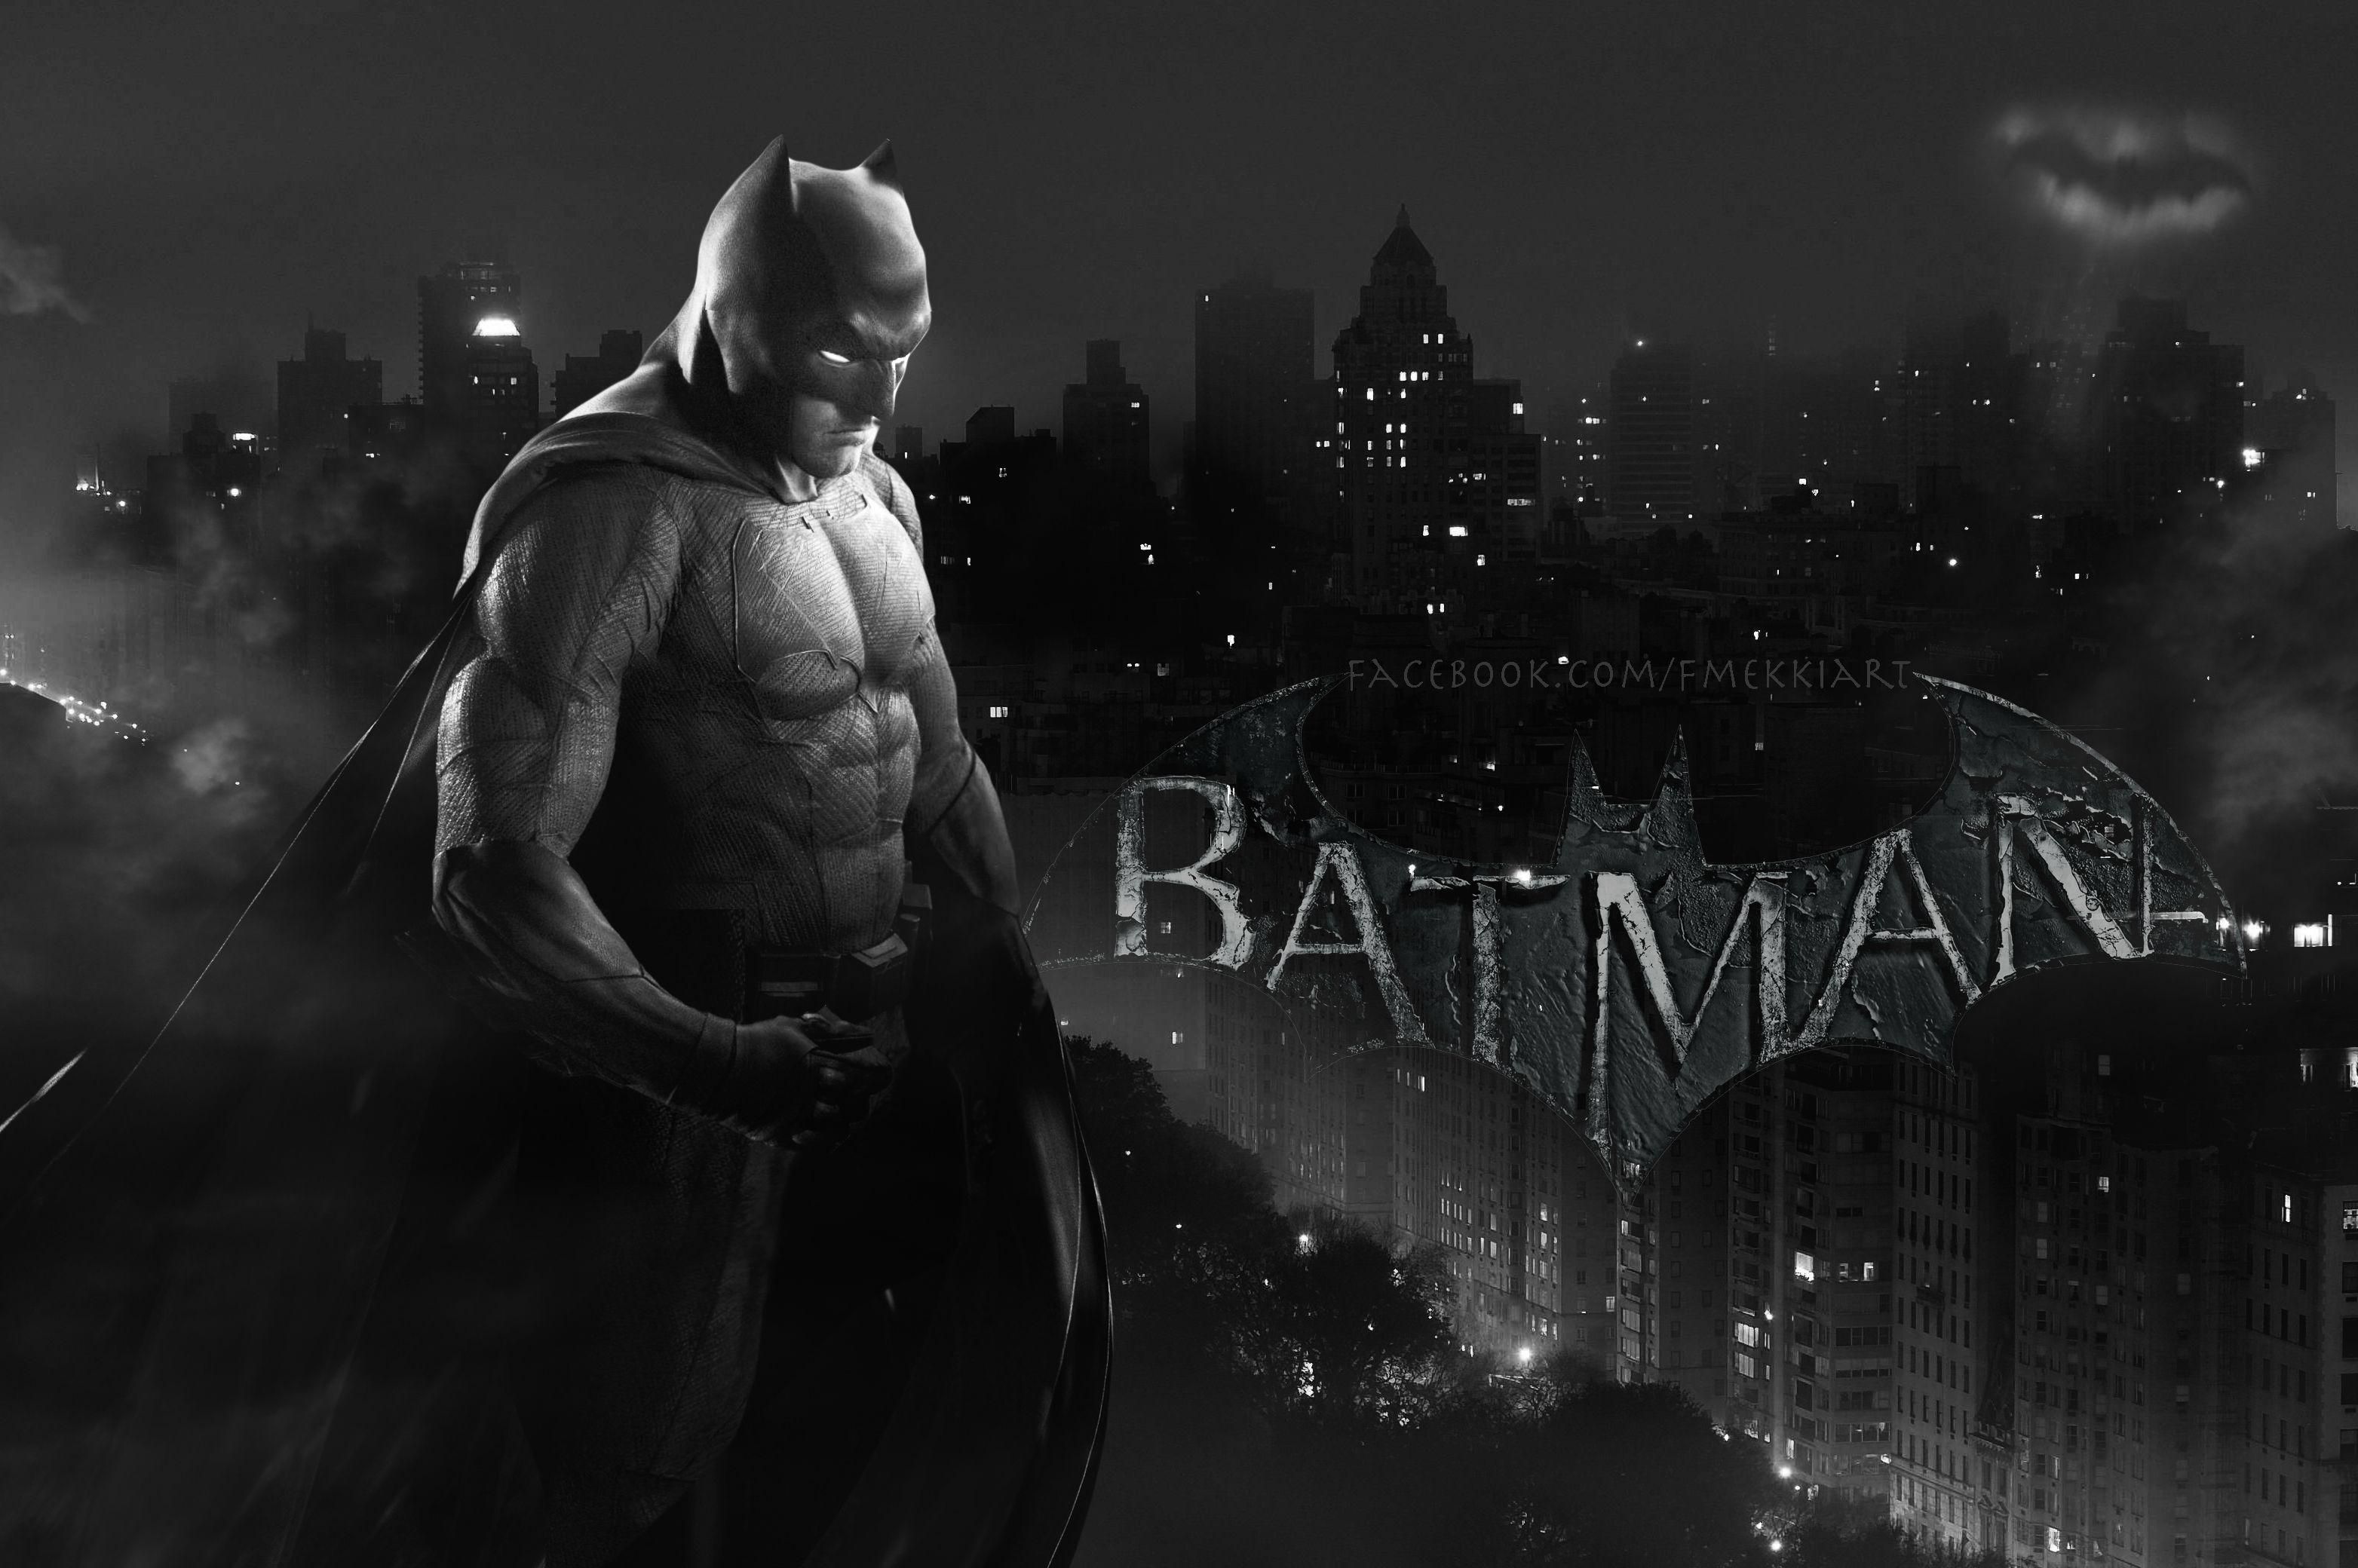 Batman [ BVS Affleck ] Wallpapers Hi